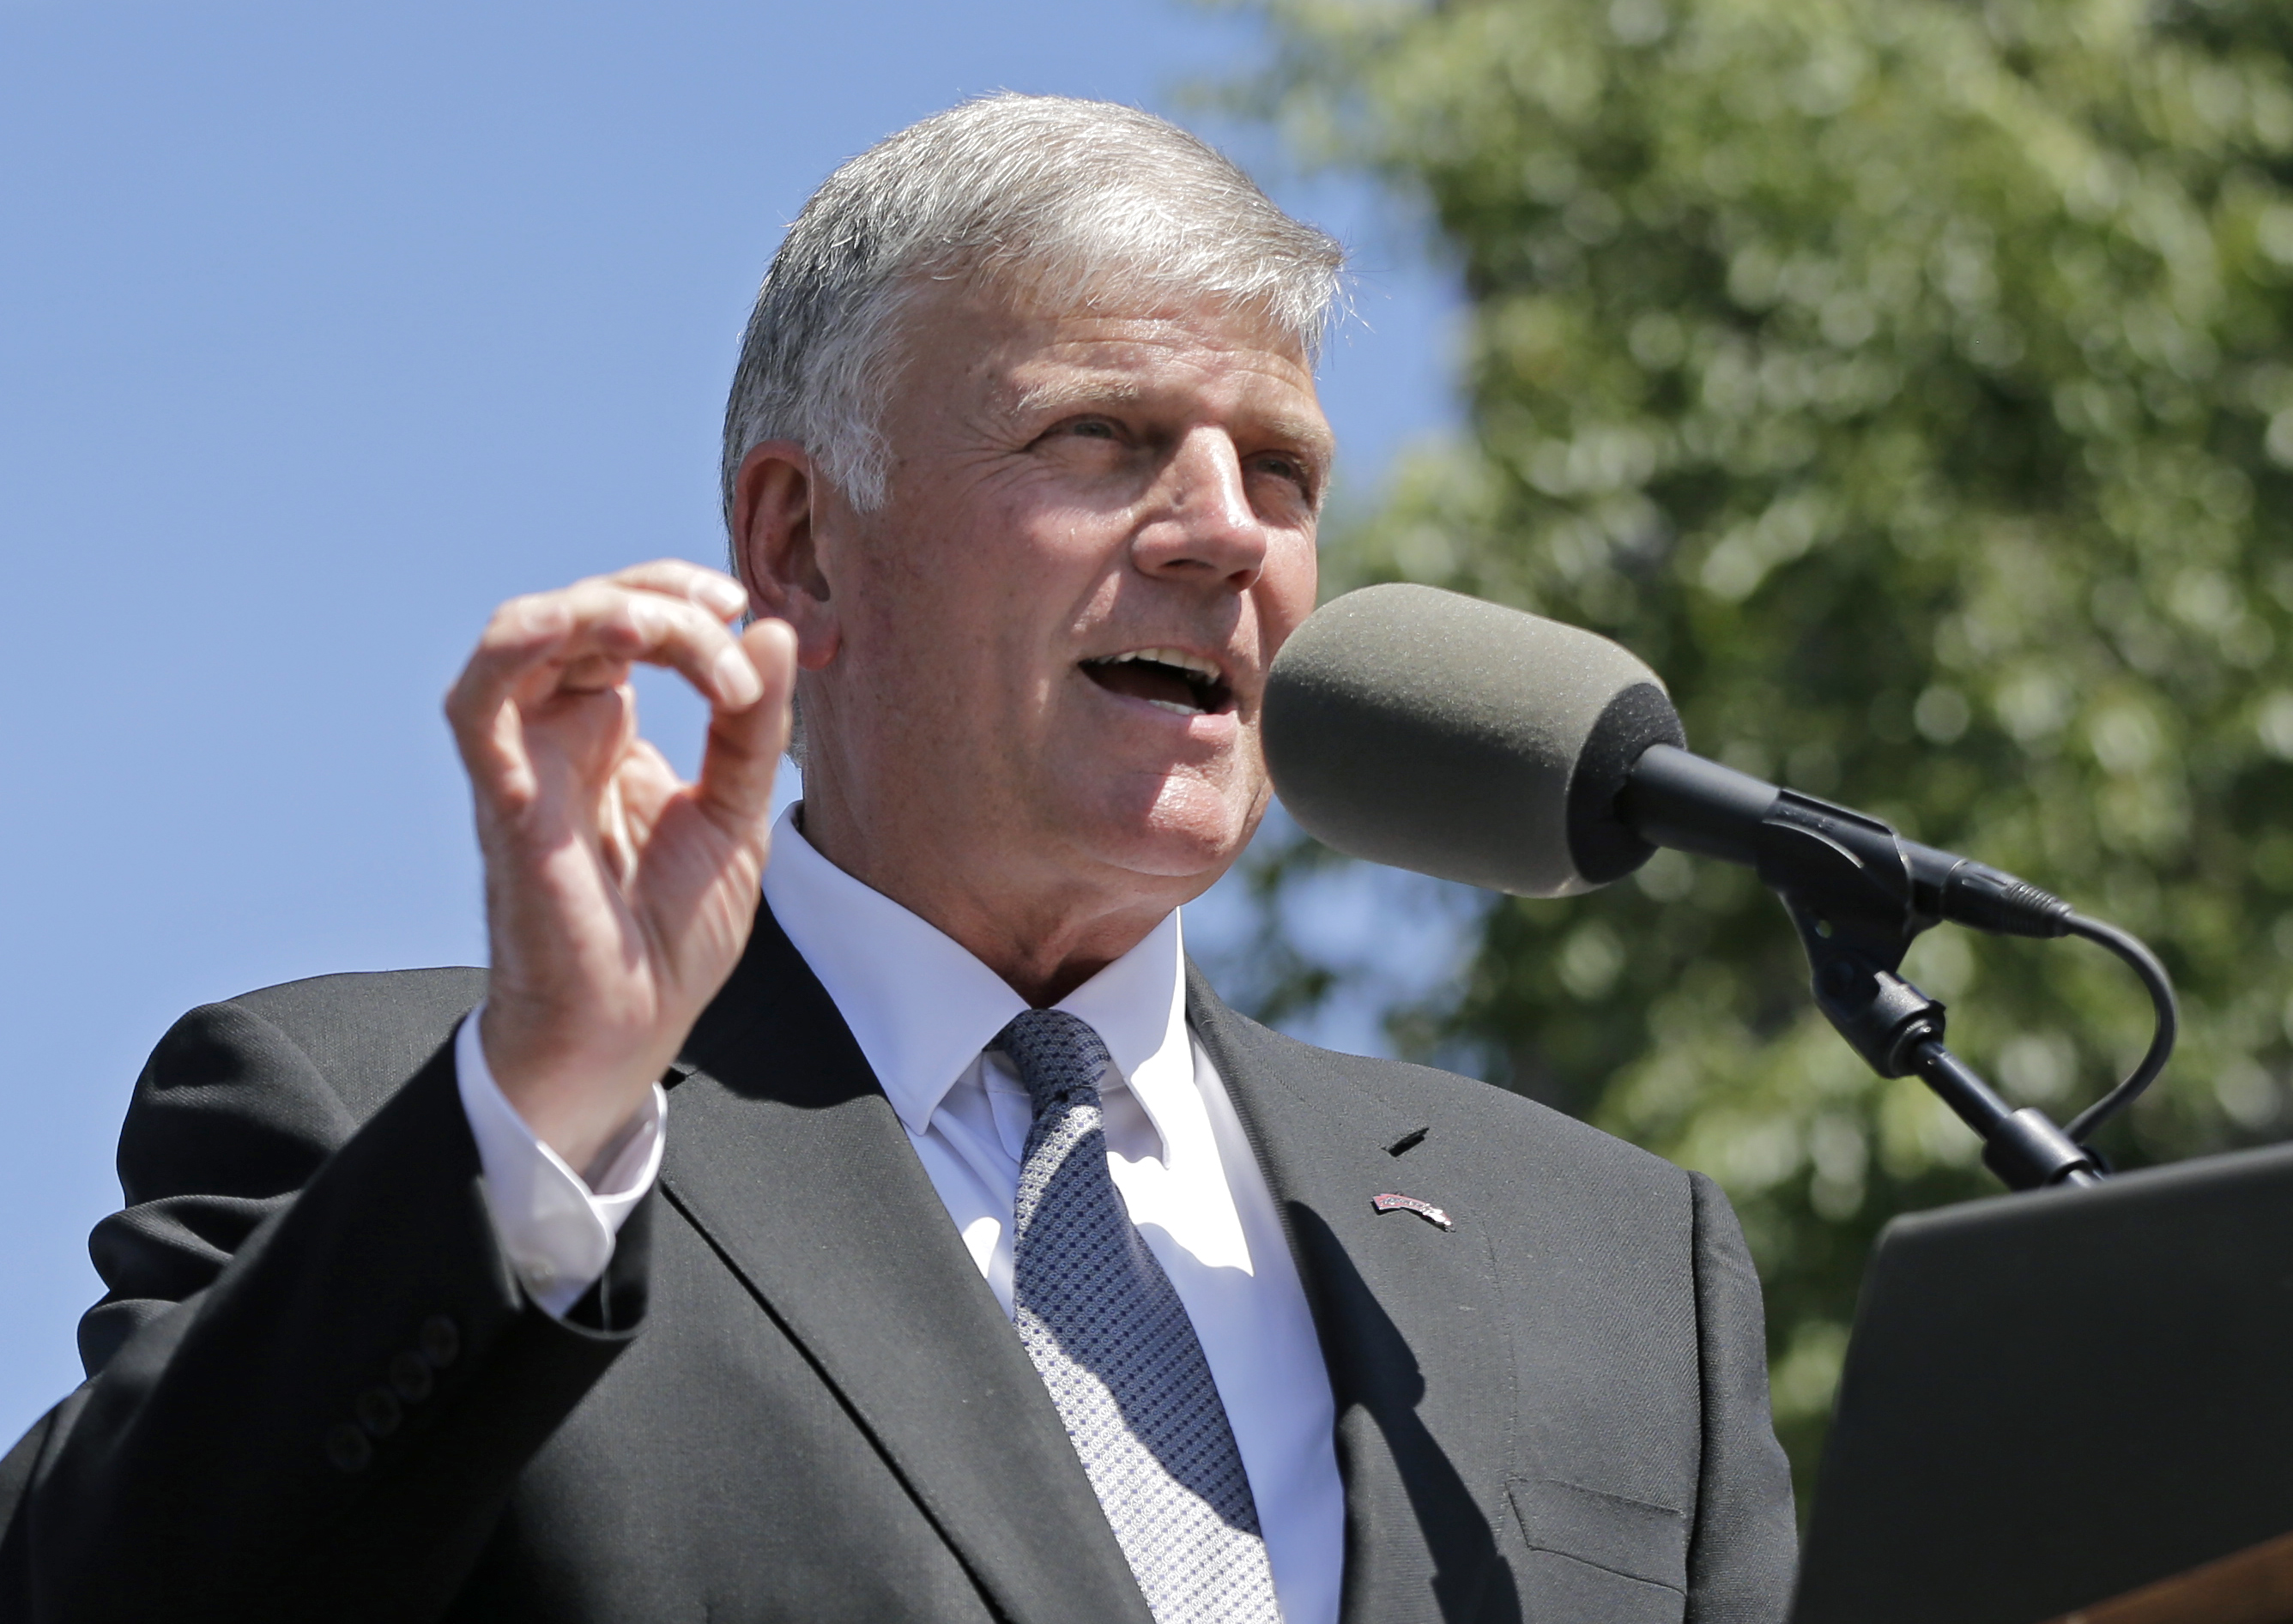 Franklin Graham: Chick-fil-A CEO 'assured me' company 'remains committed to Christian values'